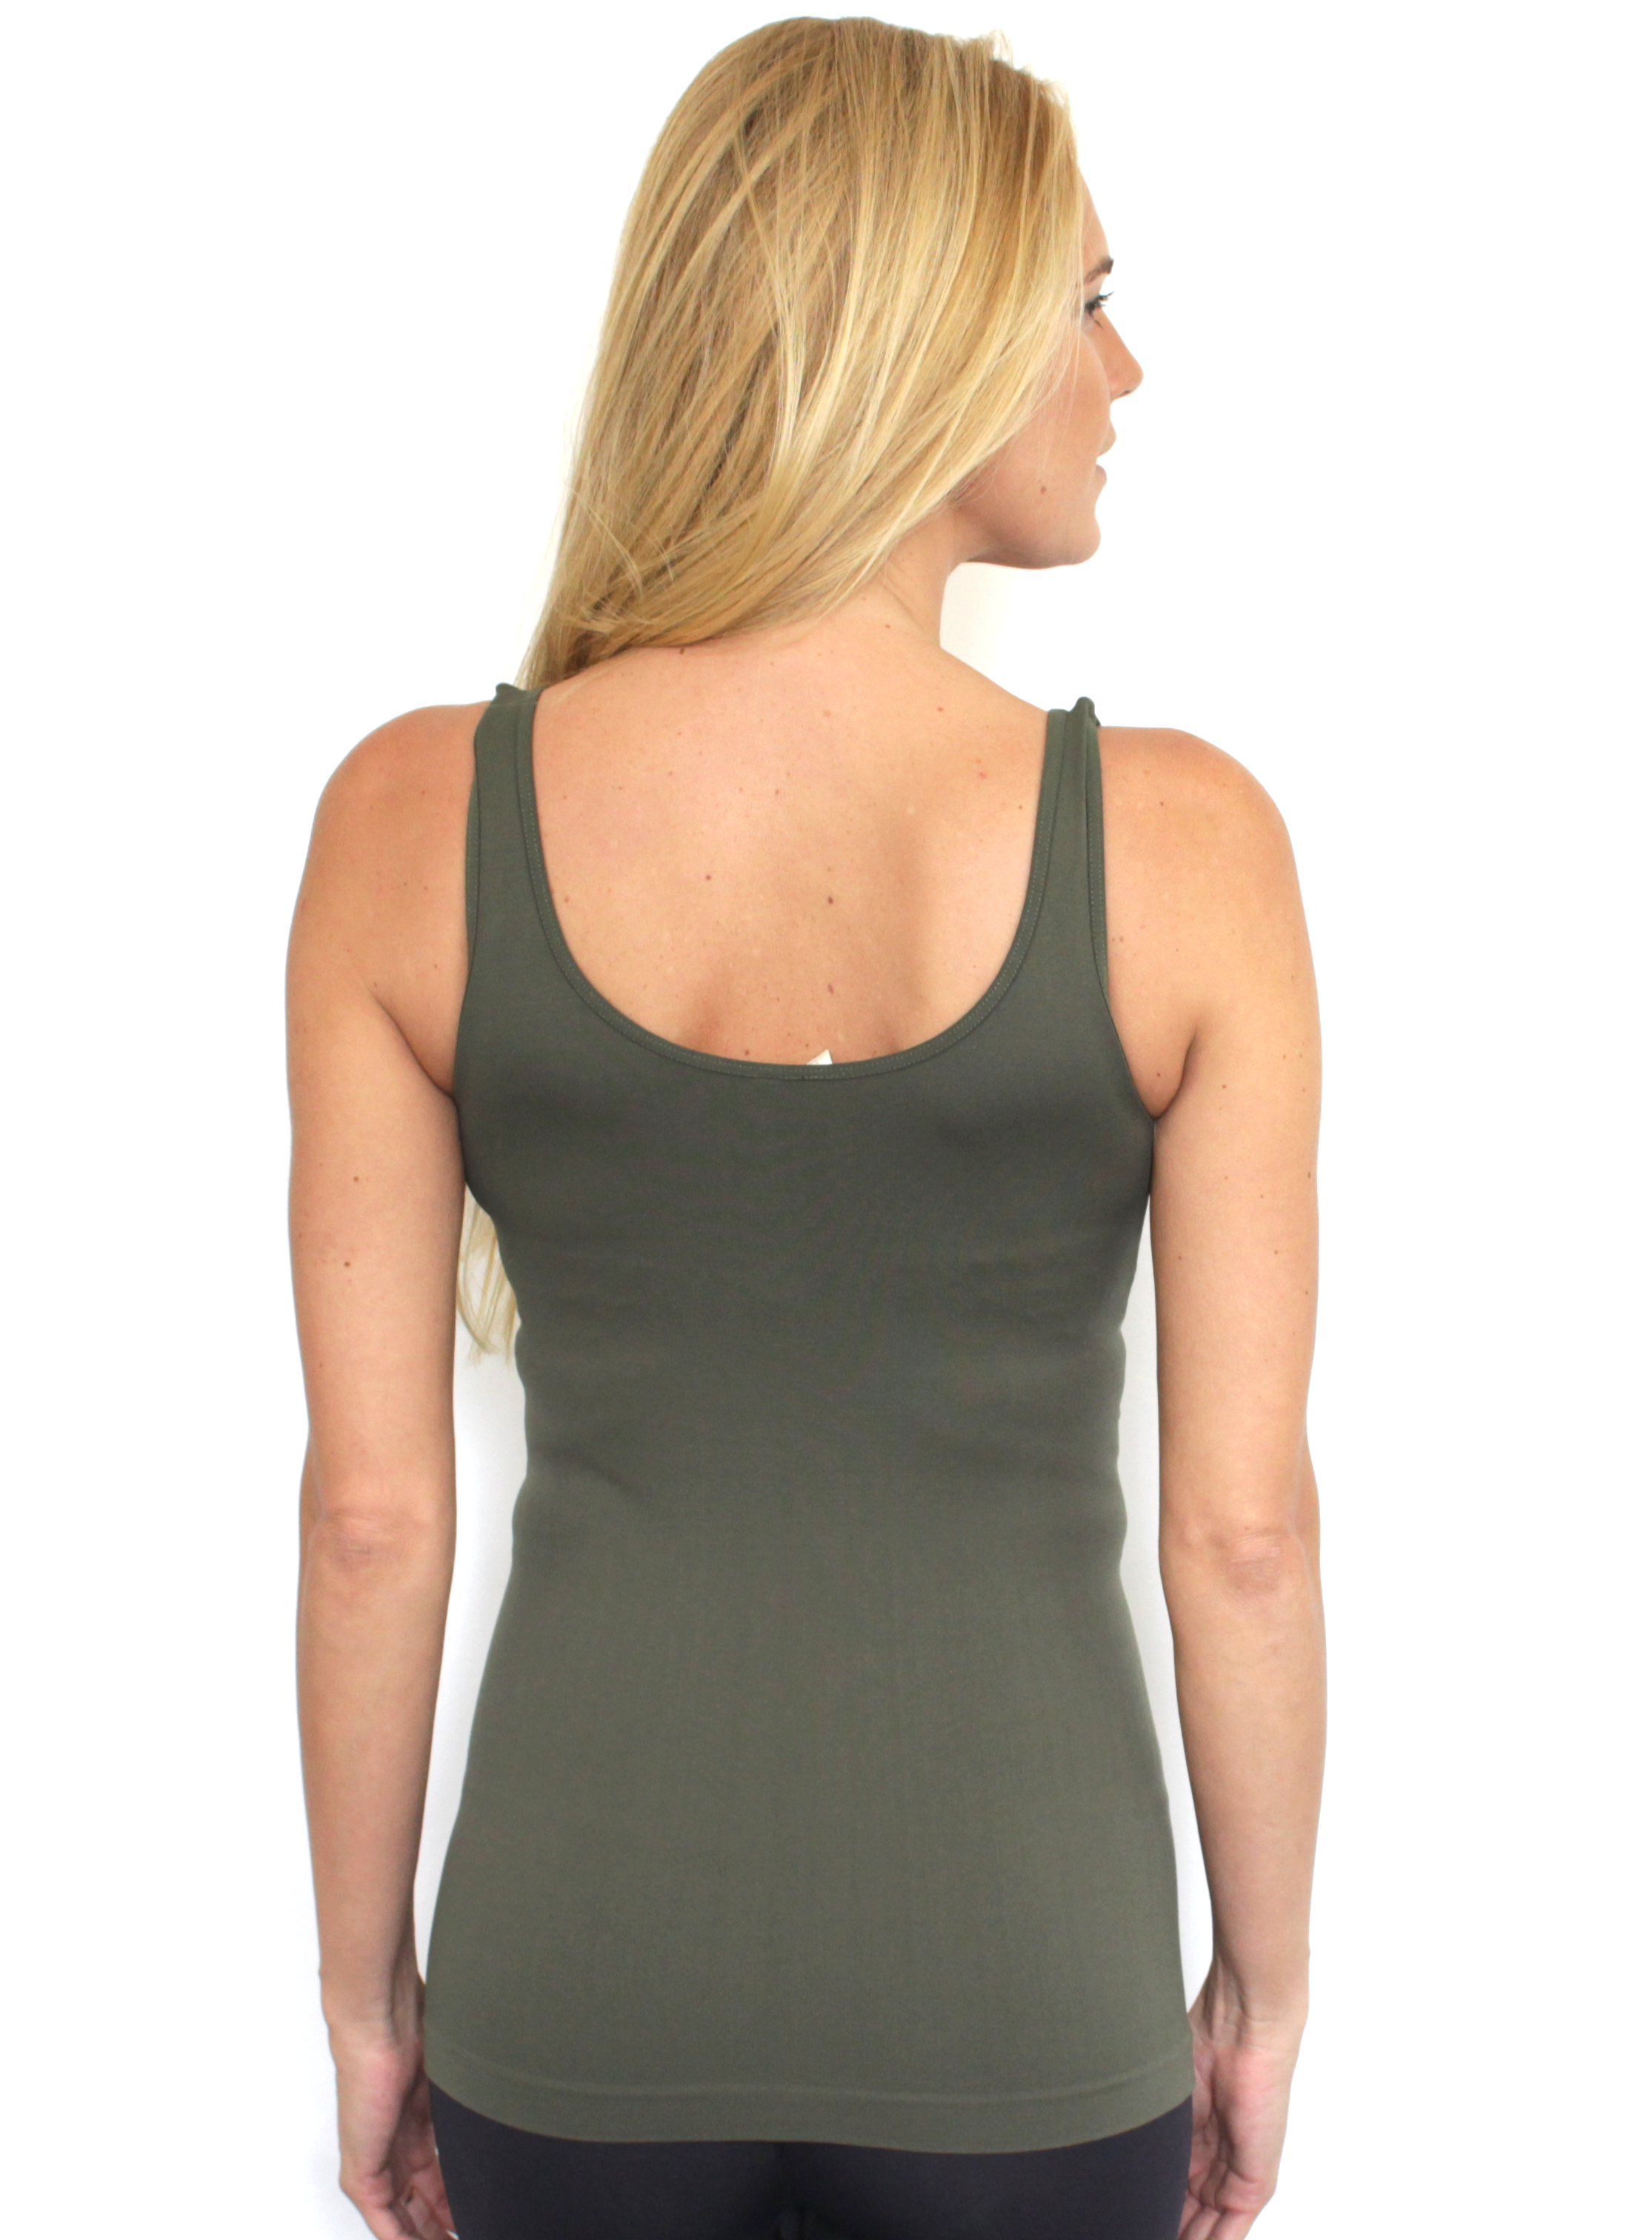 New-Anthropologie-By-Eloise-Seamless-Reversible-Soft-Layering-Tank-Top-Cami-24 thumbnail 14